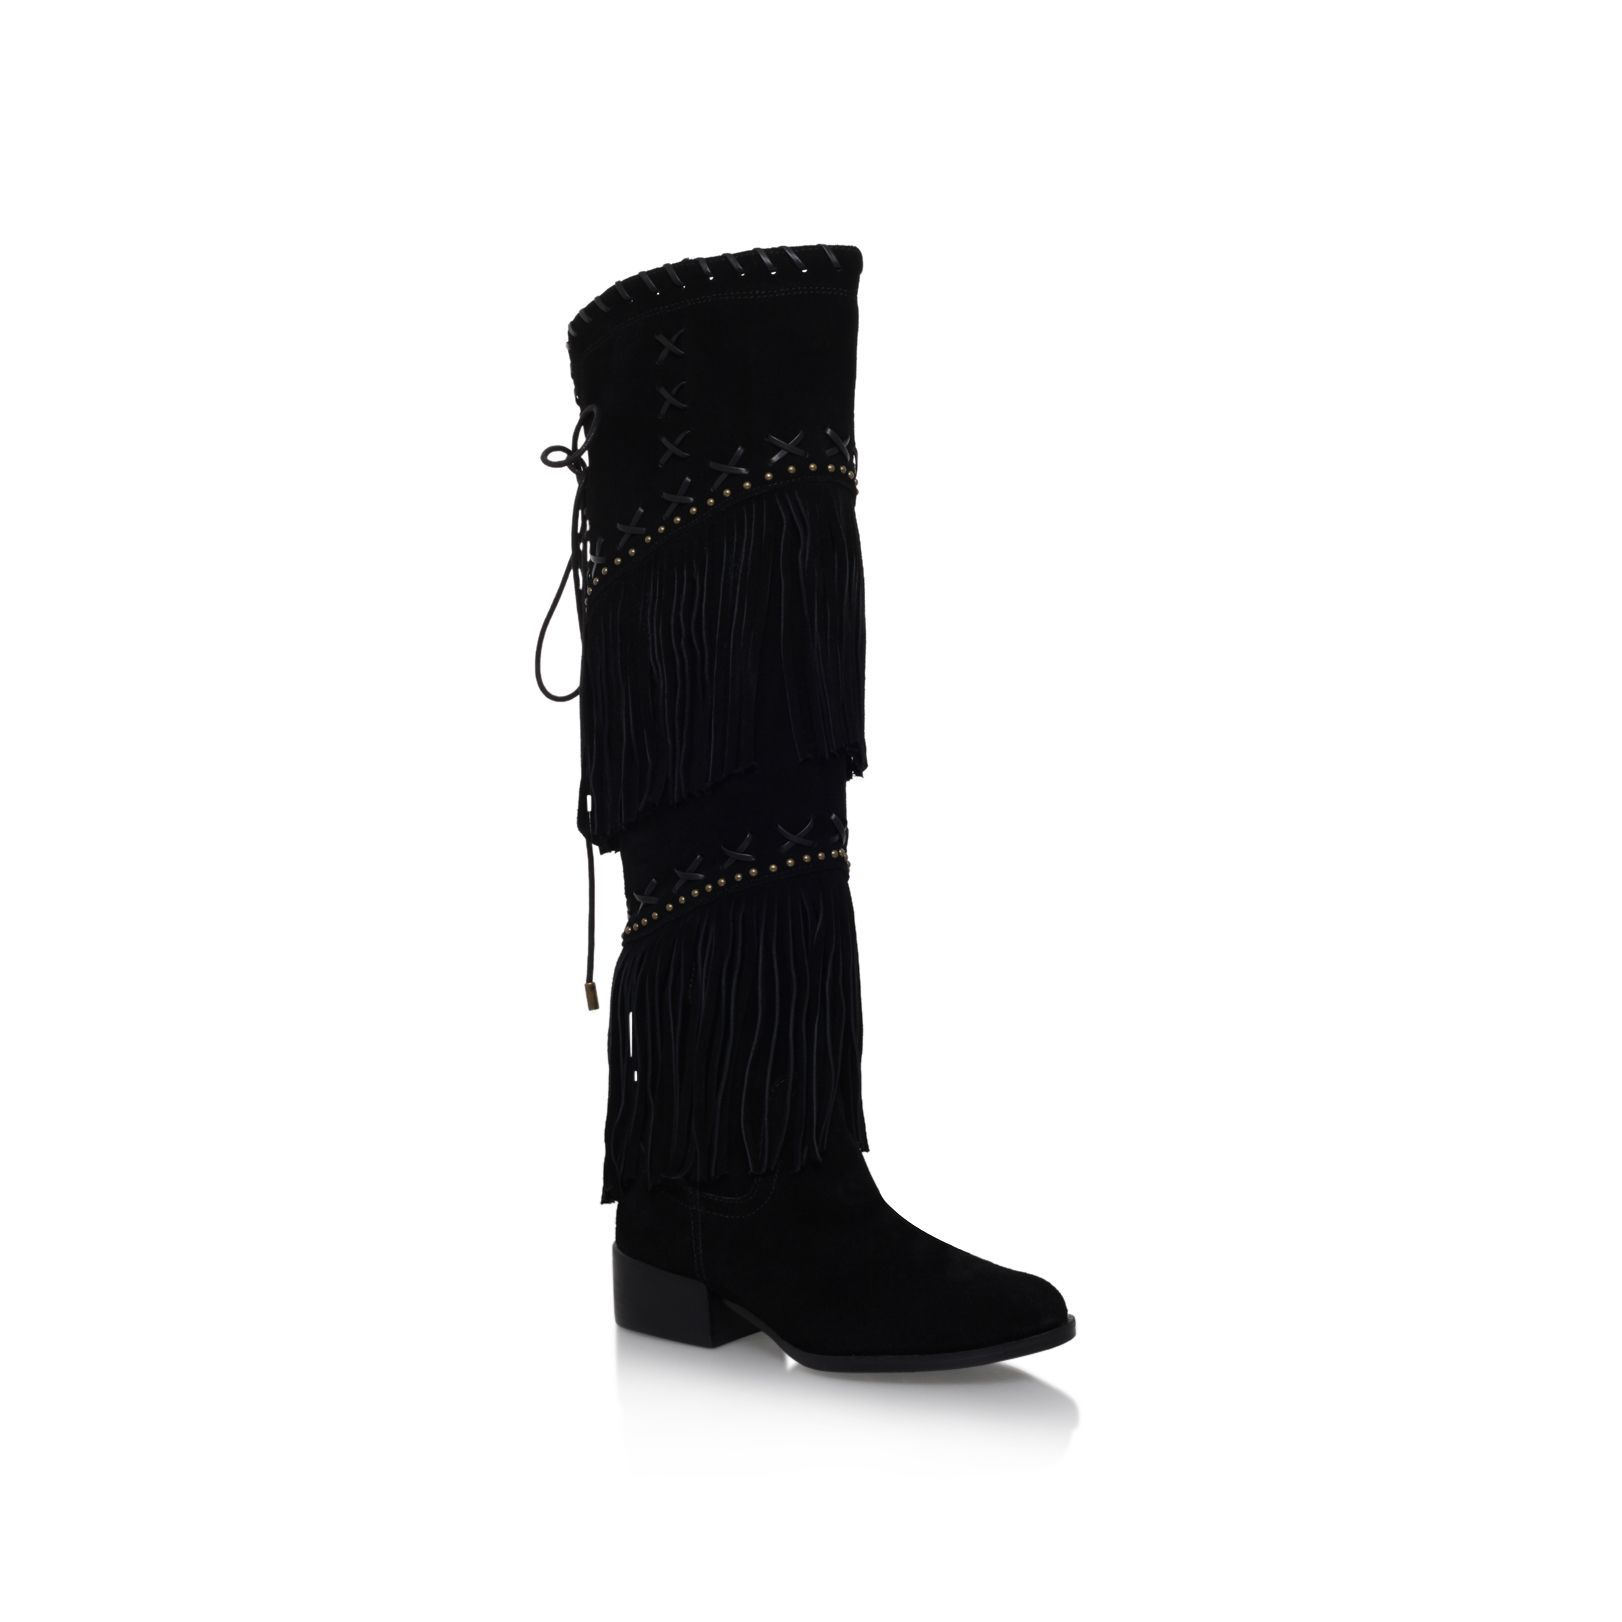 Carvela Whip flat knee high fringe detail boots